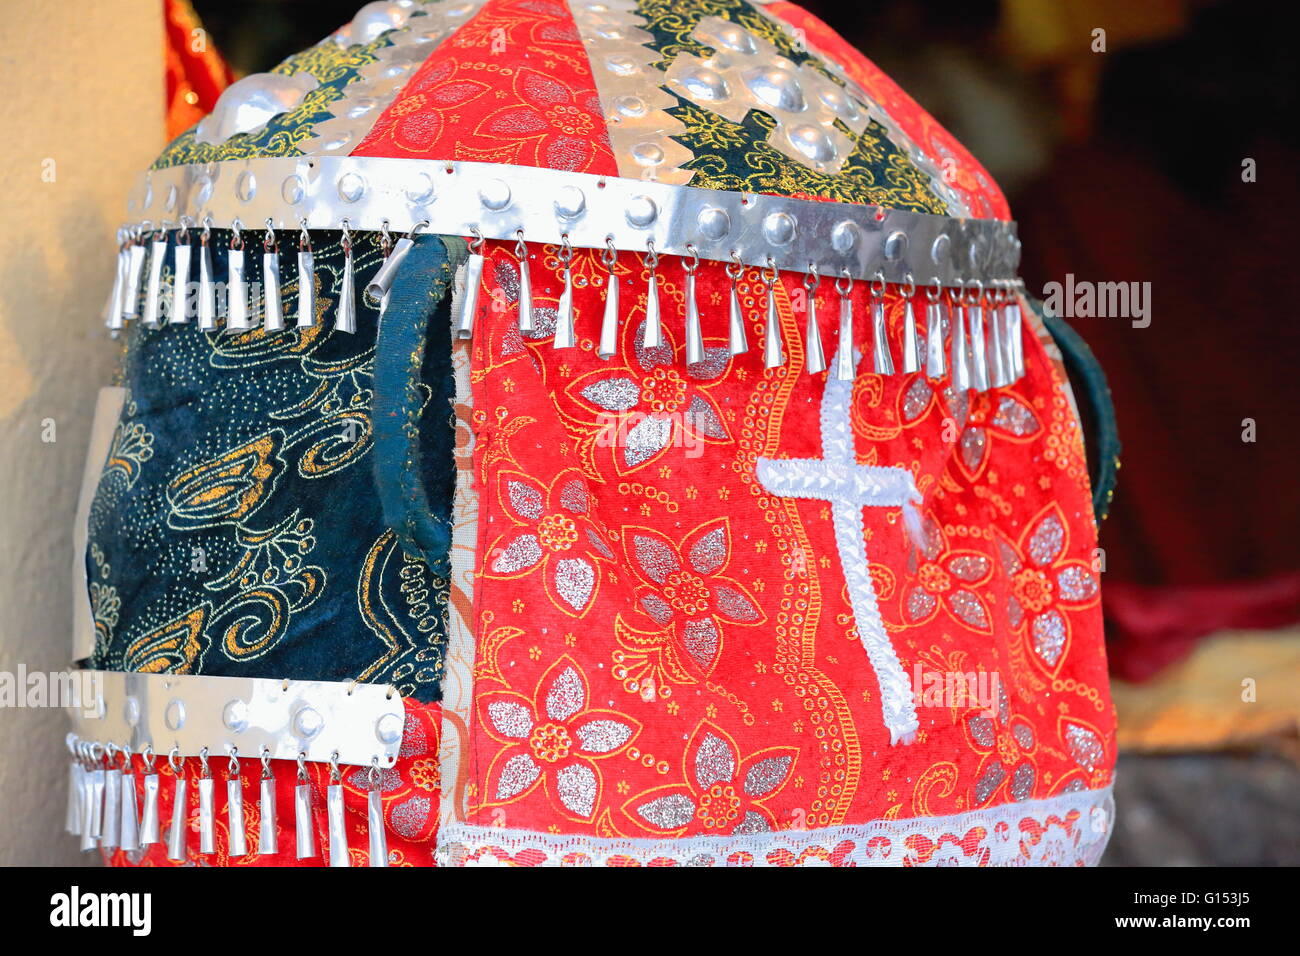 Headdress for the rites of the ethiopian christian orthodox tewahedo church. Shop in central Mek'ele-Mekelle - Stock Image